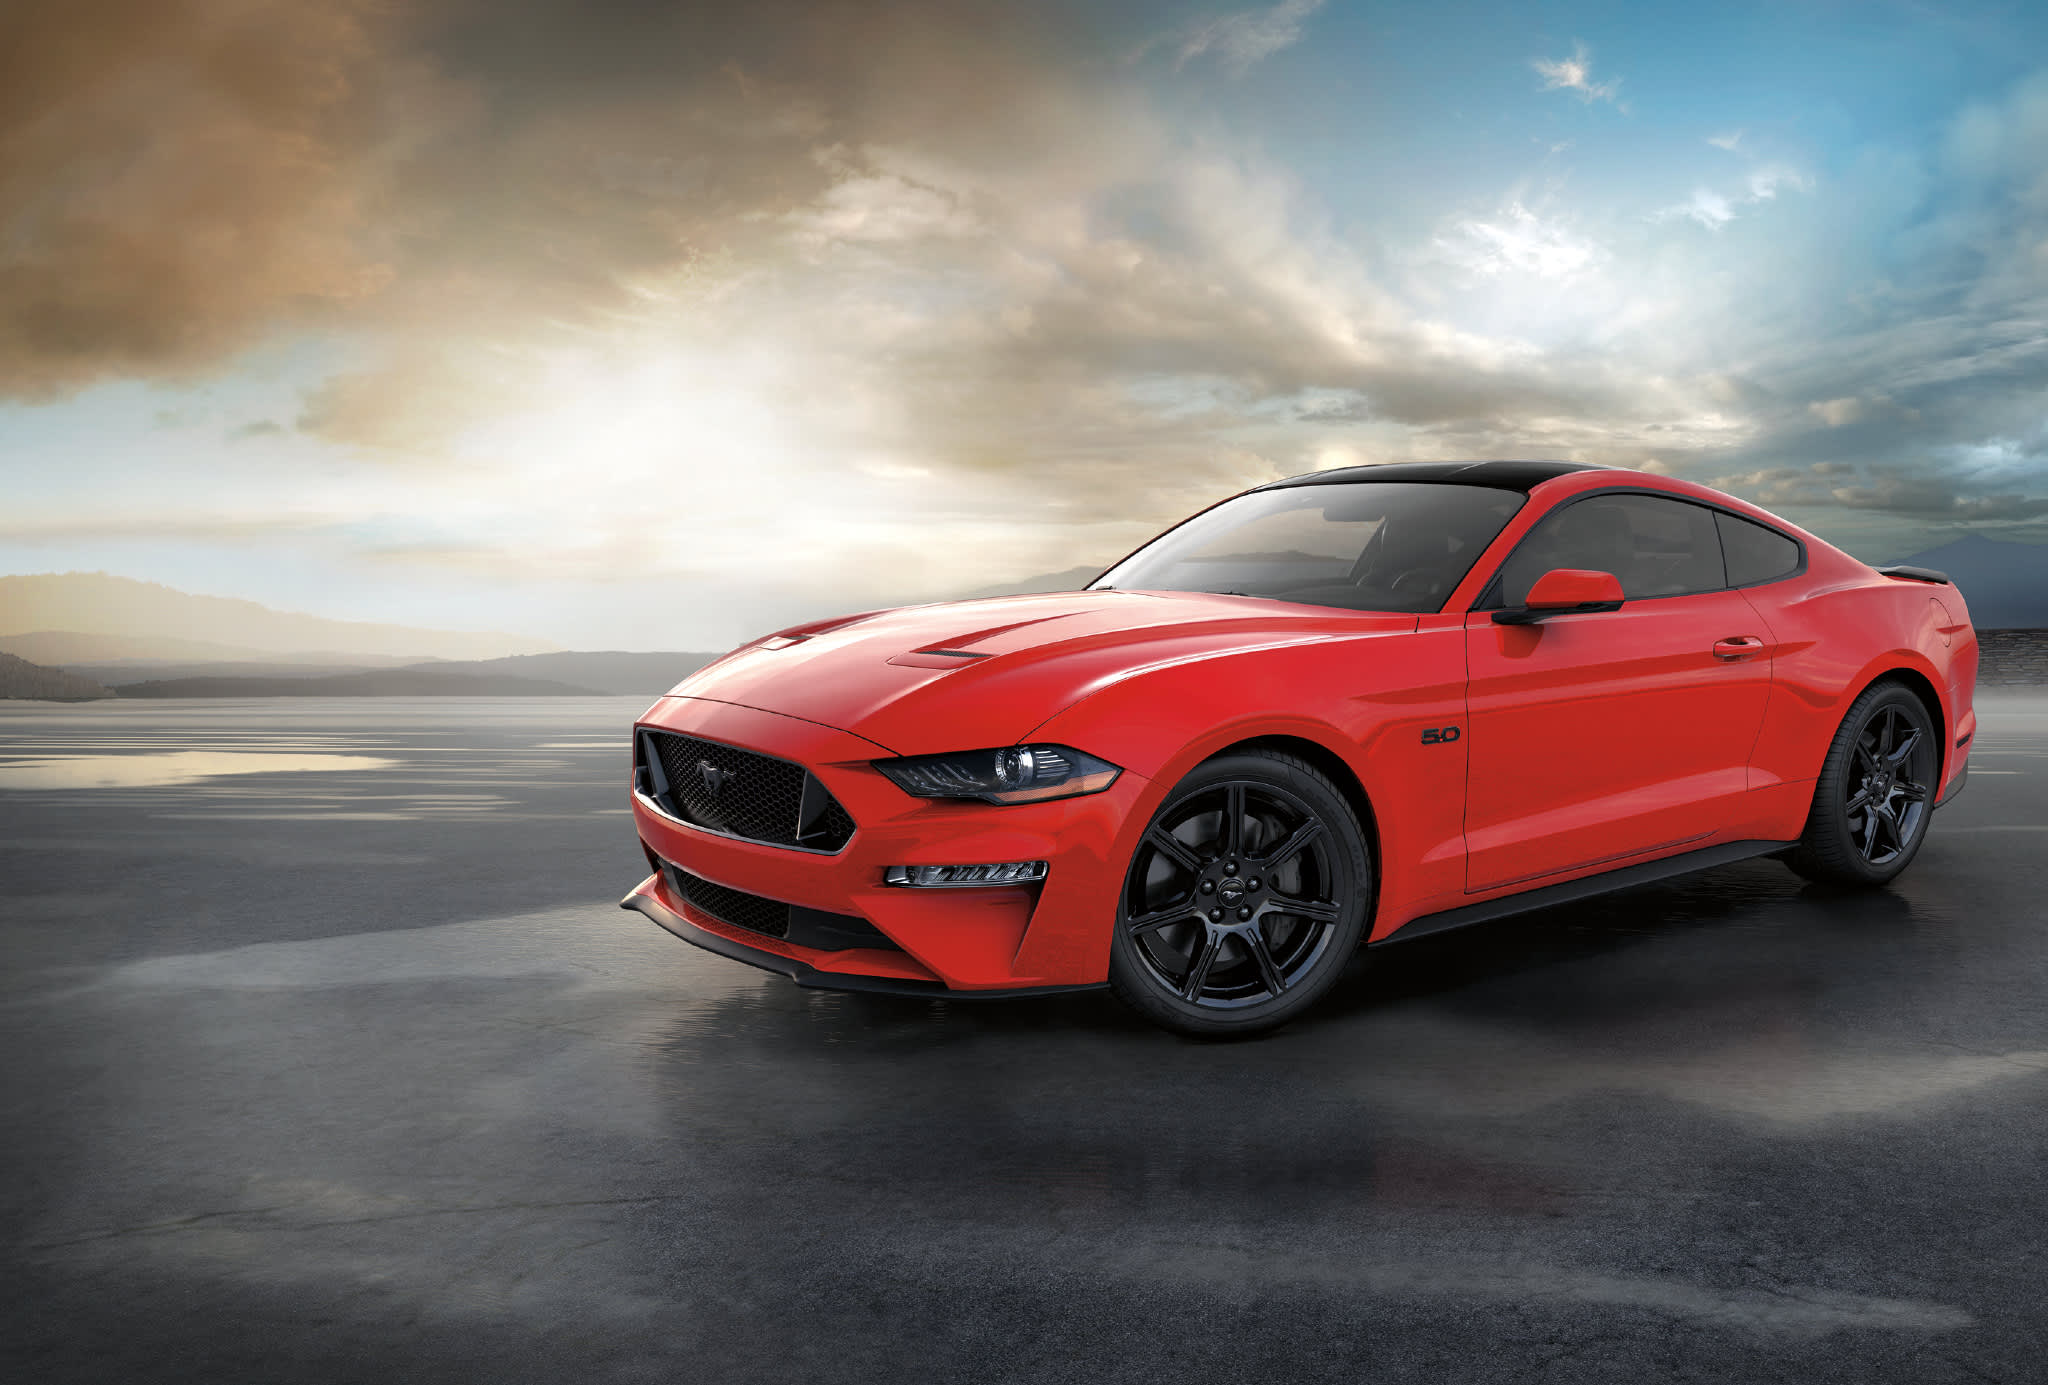 Ford has now made 10 million mustangs here is a history of the iconic best selling sports car